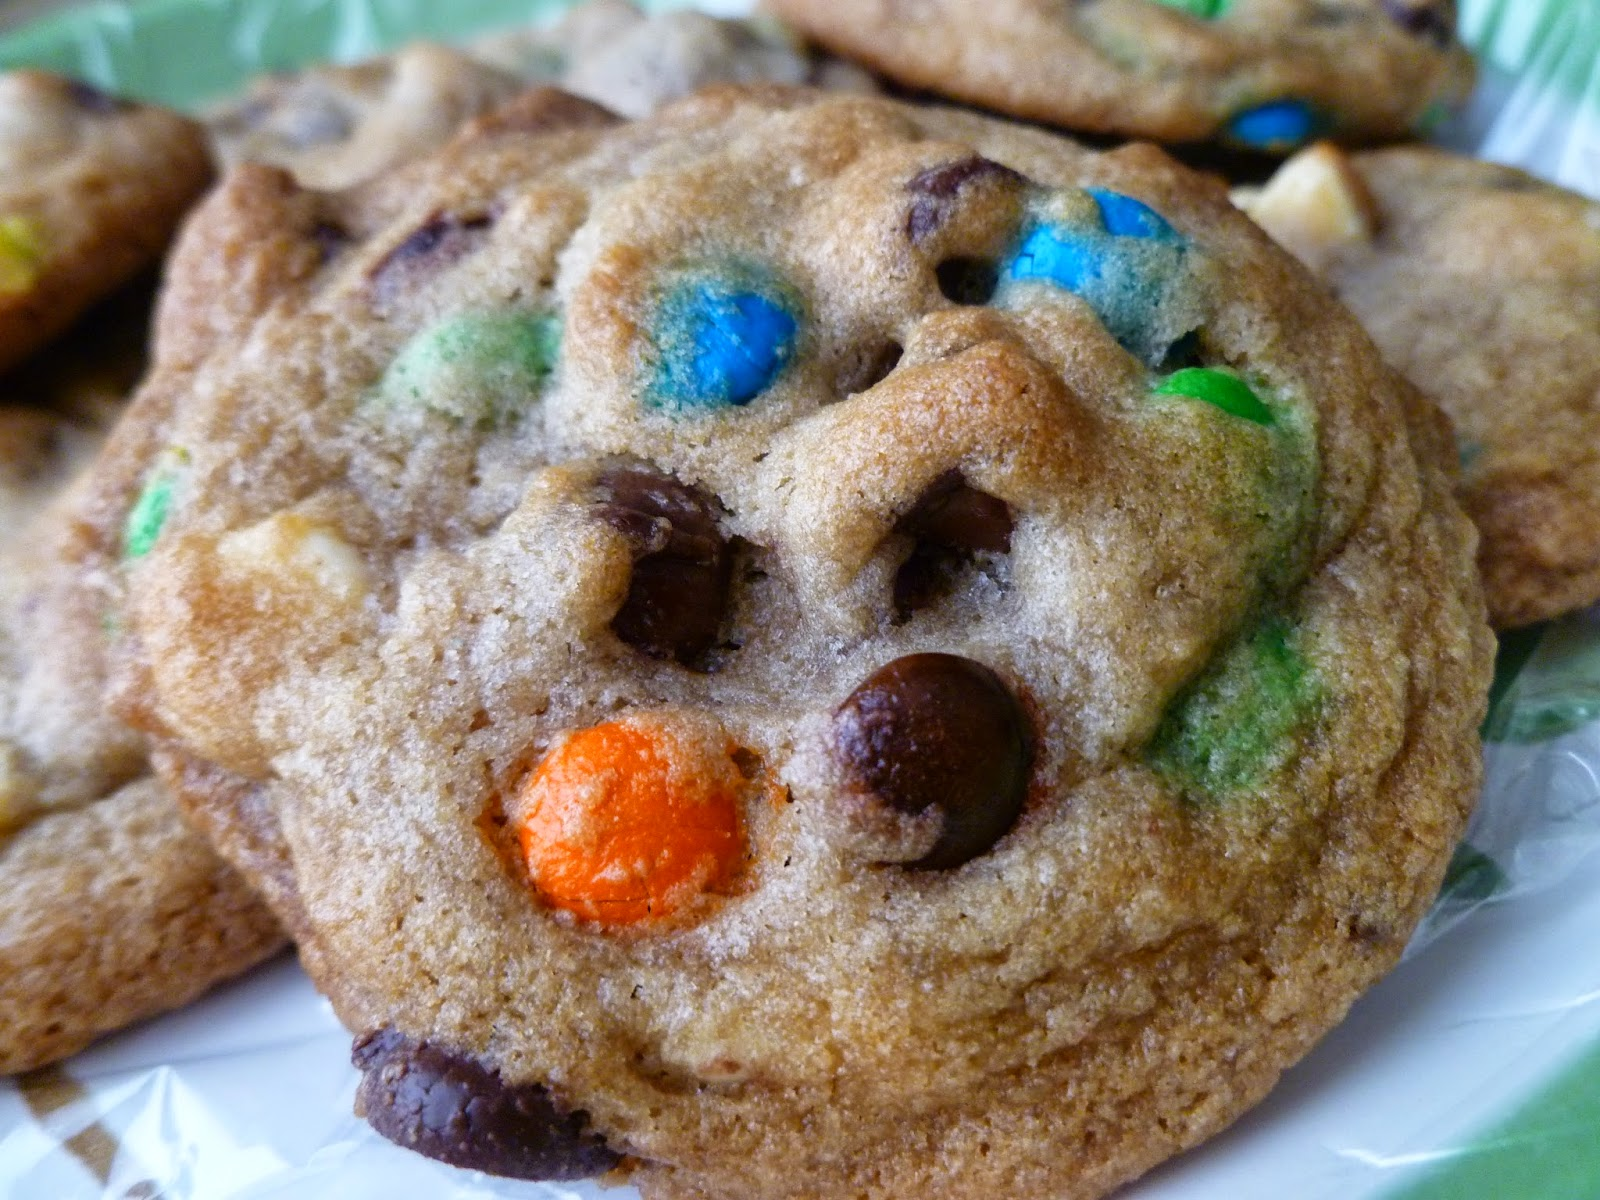 The Pastry Chef's Baking: Triple Chocolate Chip Cookies